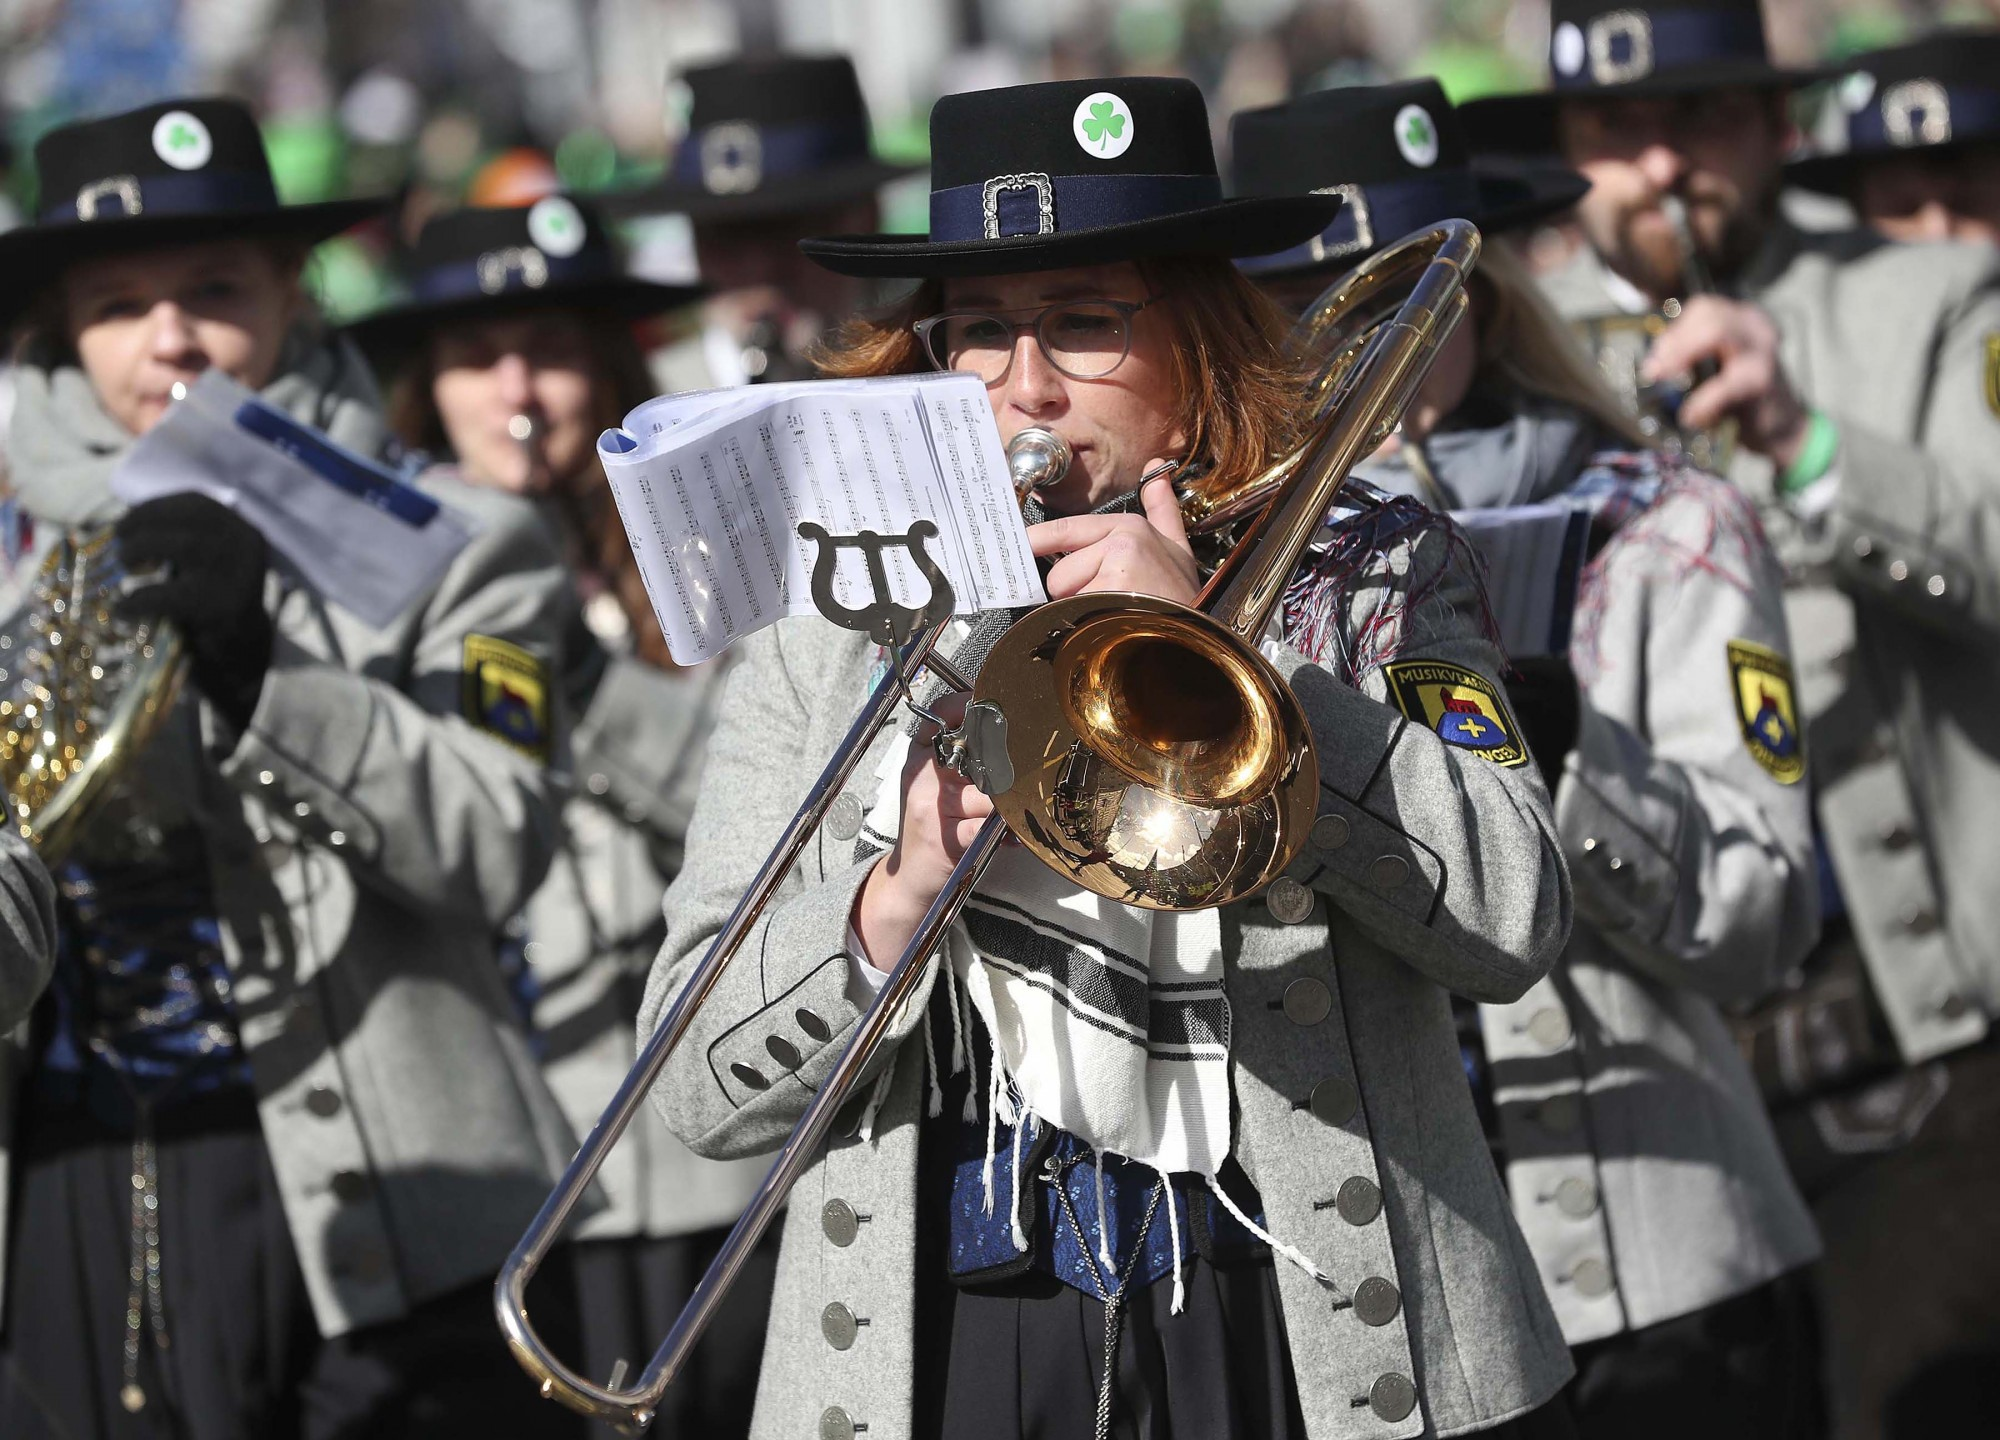 St_Patricks_Day_Parade_Dublin_2019_40.jpg